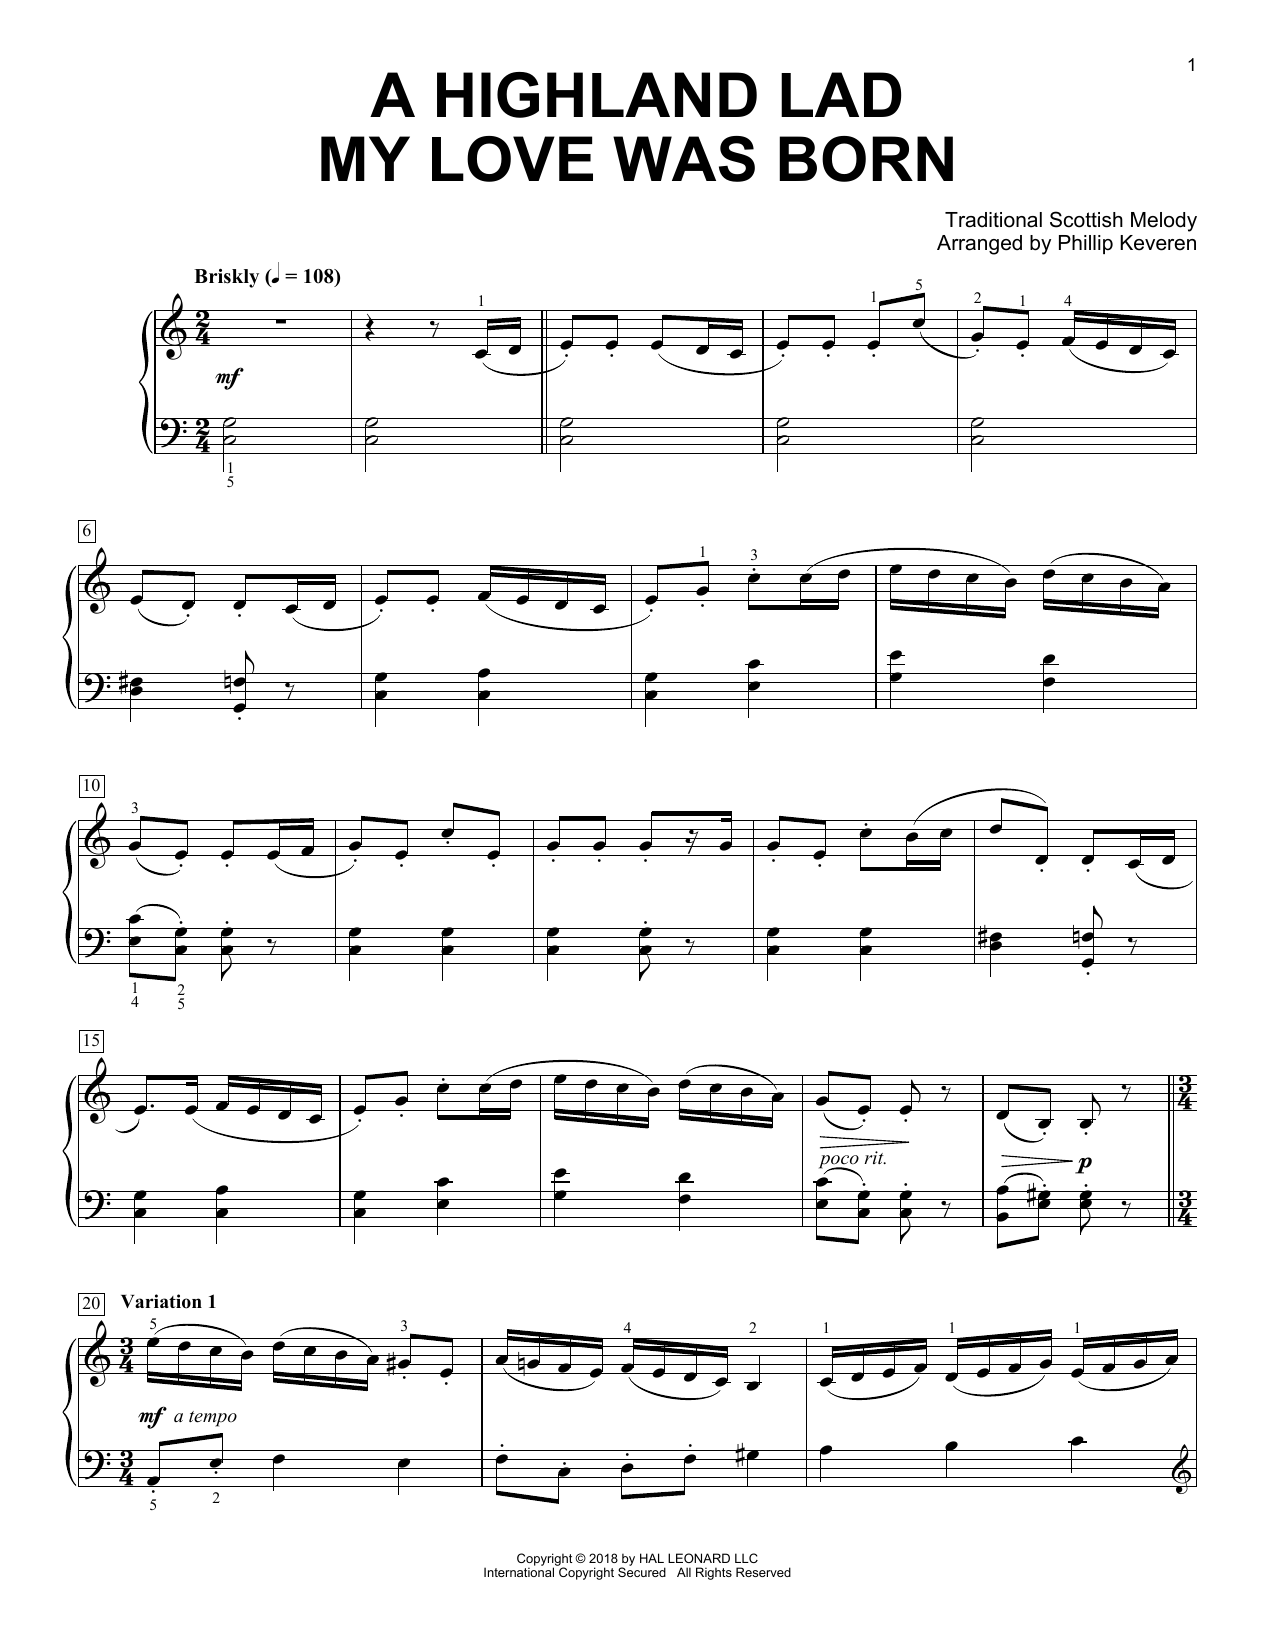 Robert Burns A Highland Lad My Love Was Born (arr. Phillip Keveren) sheet music notes and chords